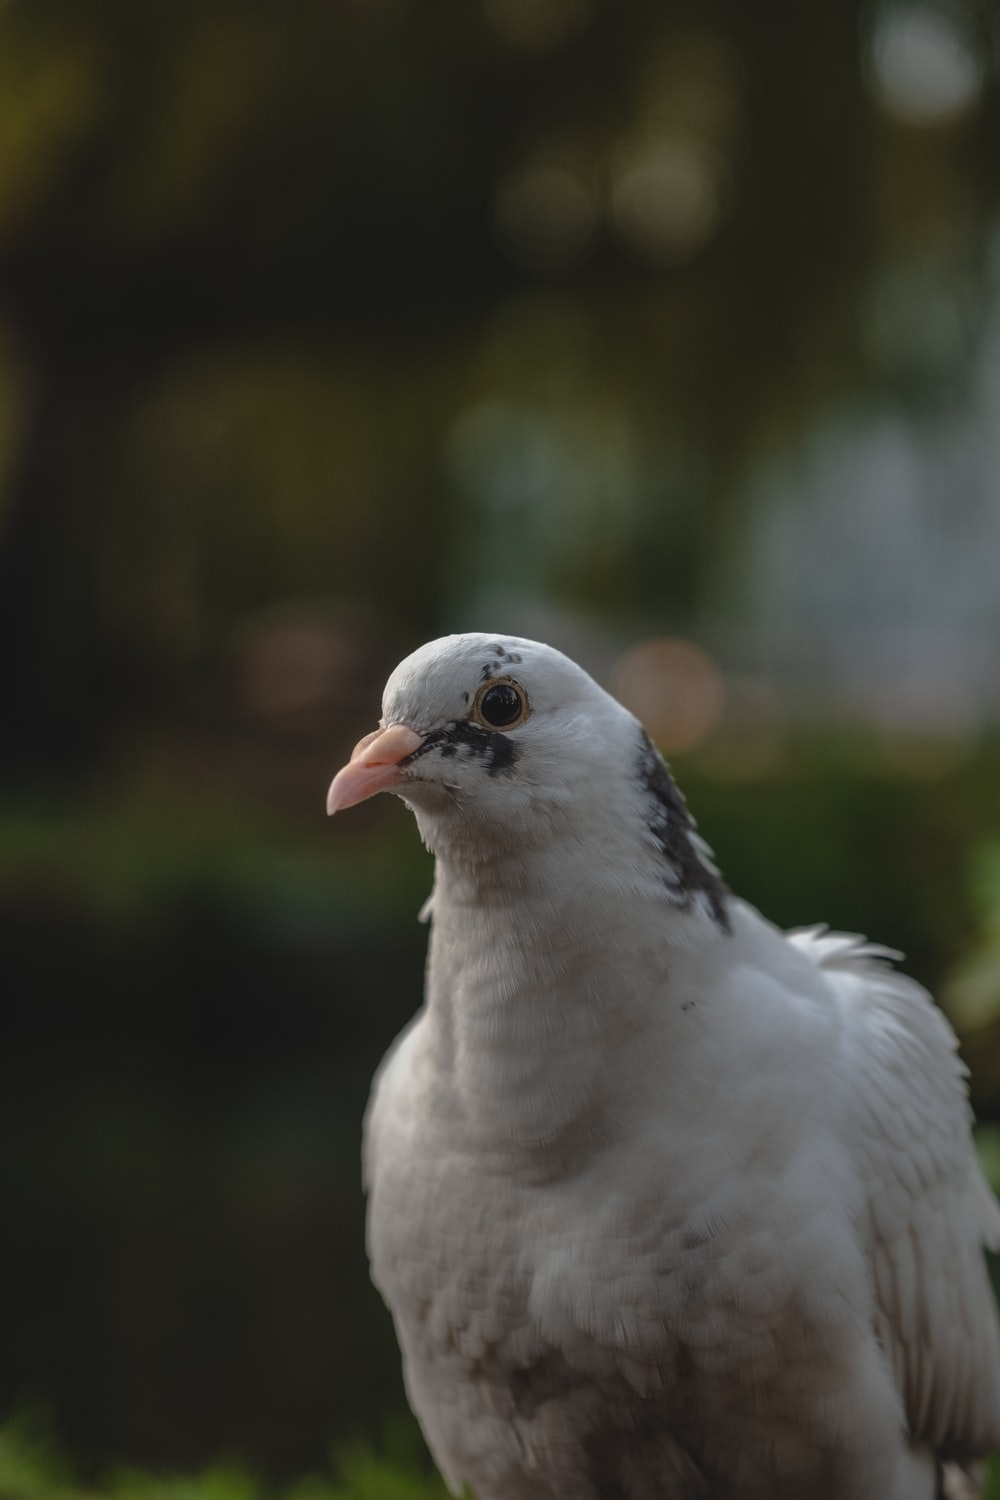 selective focus photography of white and gray pigeon